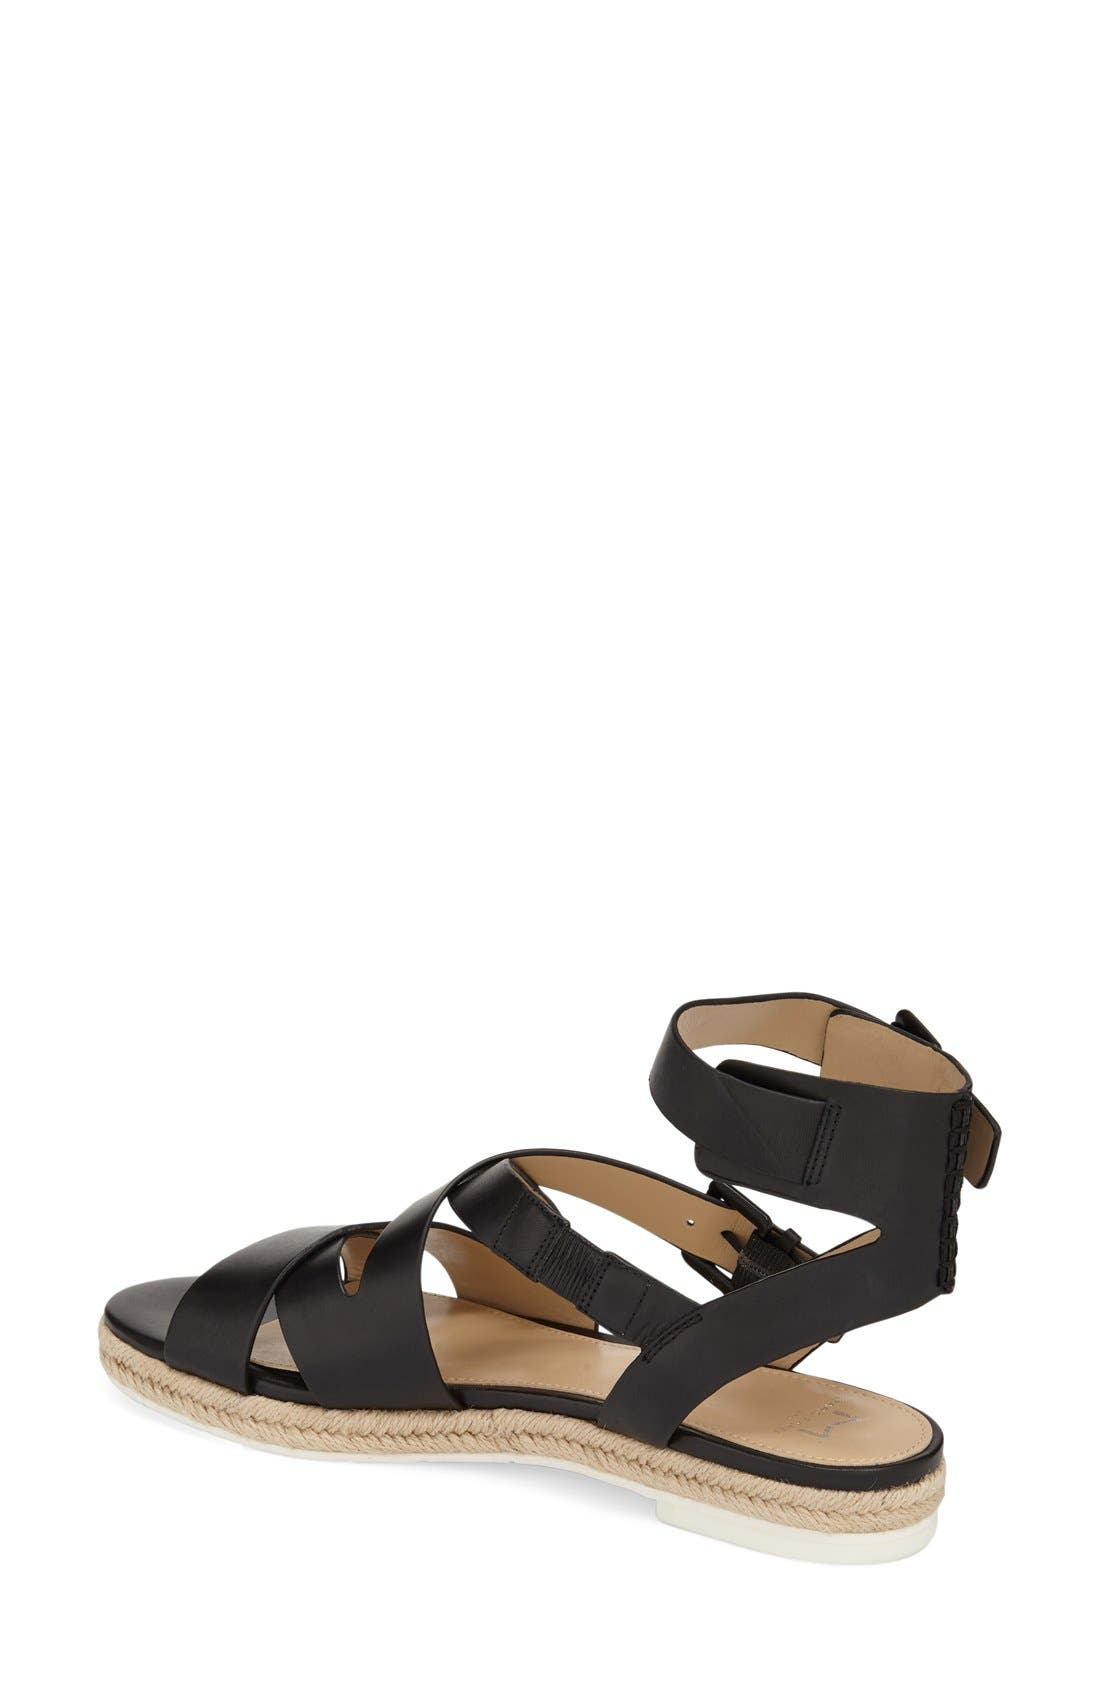 MARC FISHER LTD, 'Alysse' Flat Sandal, Alternate thumbnail 4, color, 001